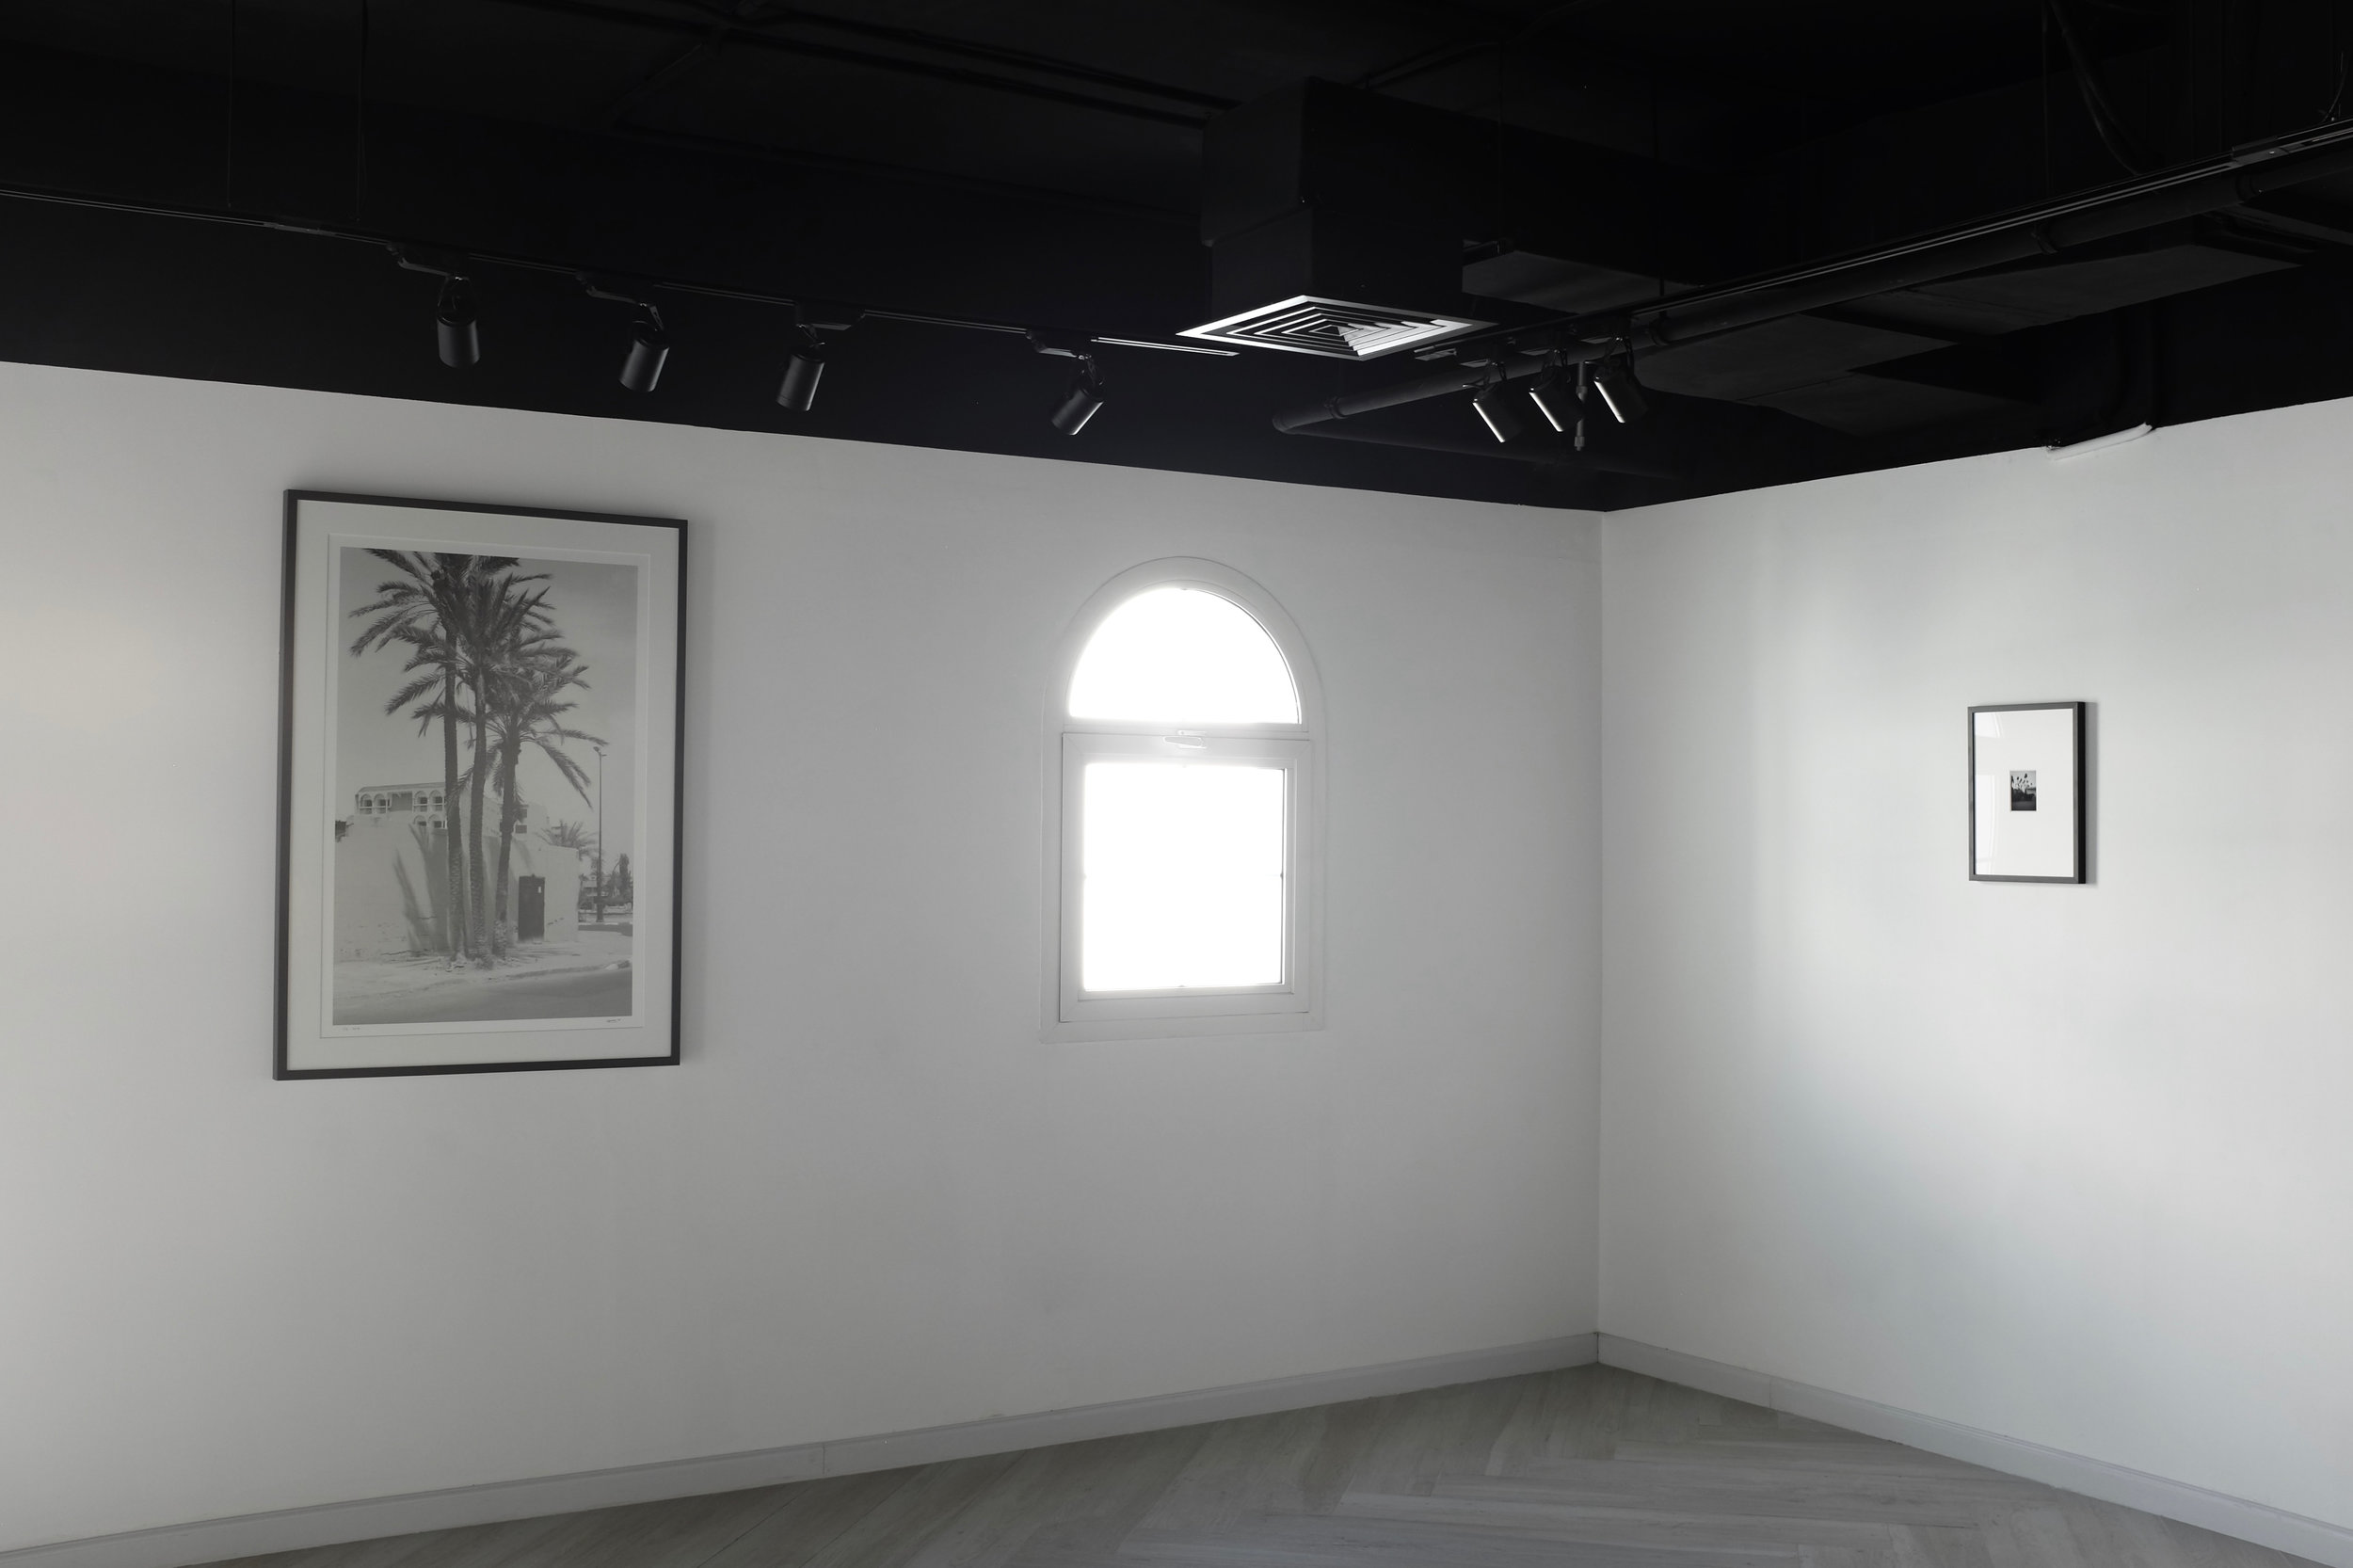 Cyrus Mahboubian Nomad solo show 2.jpg